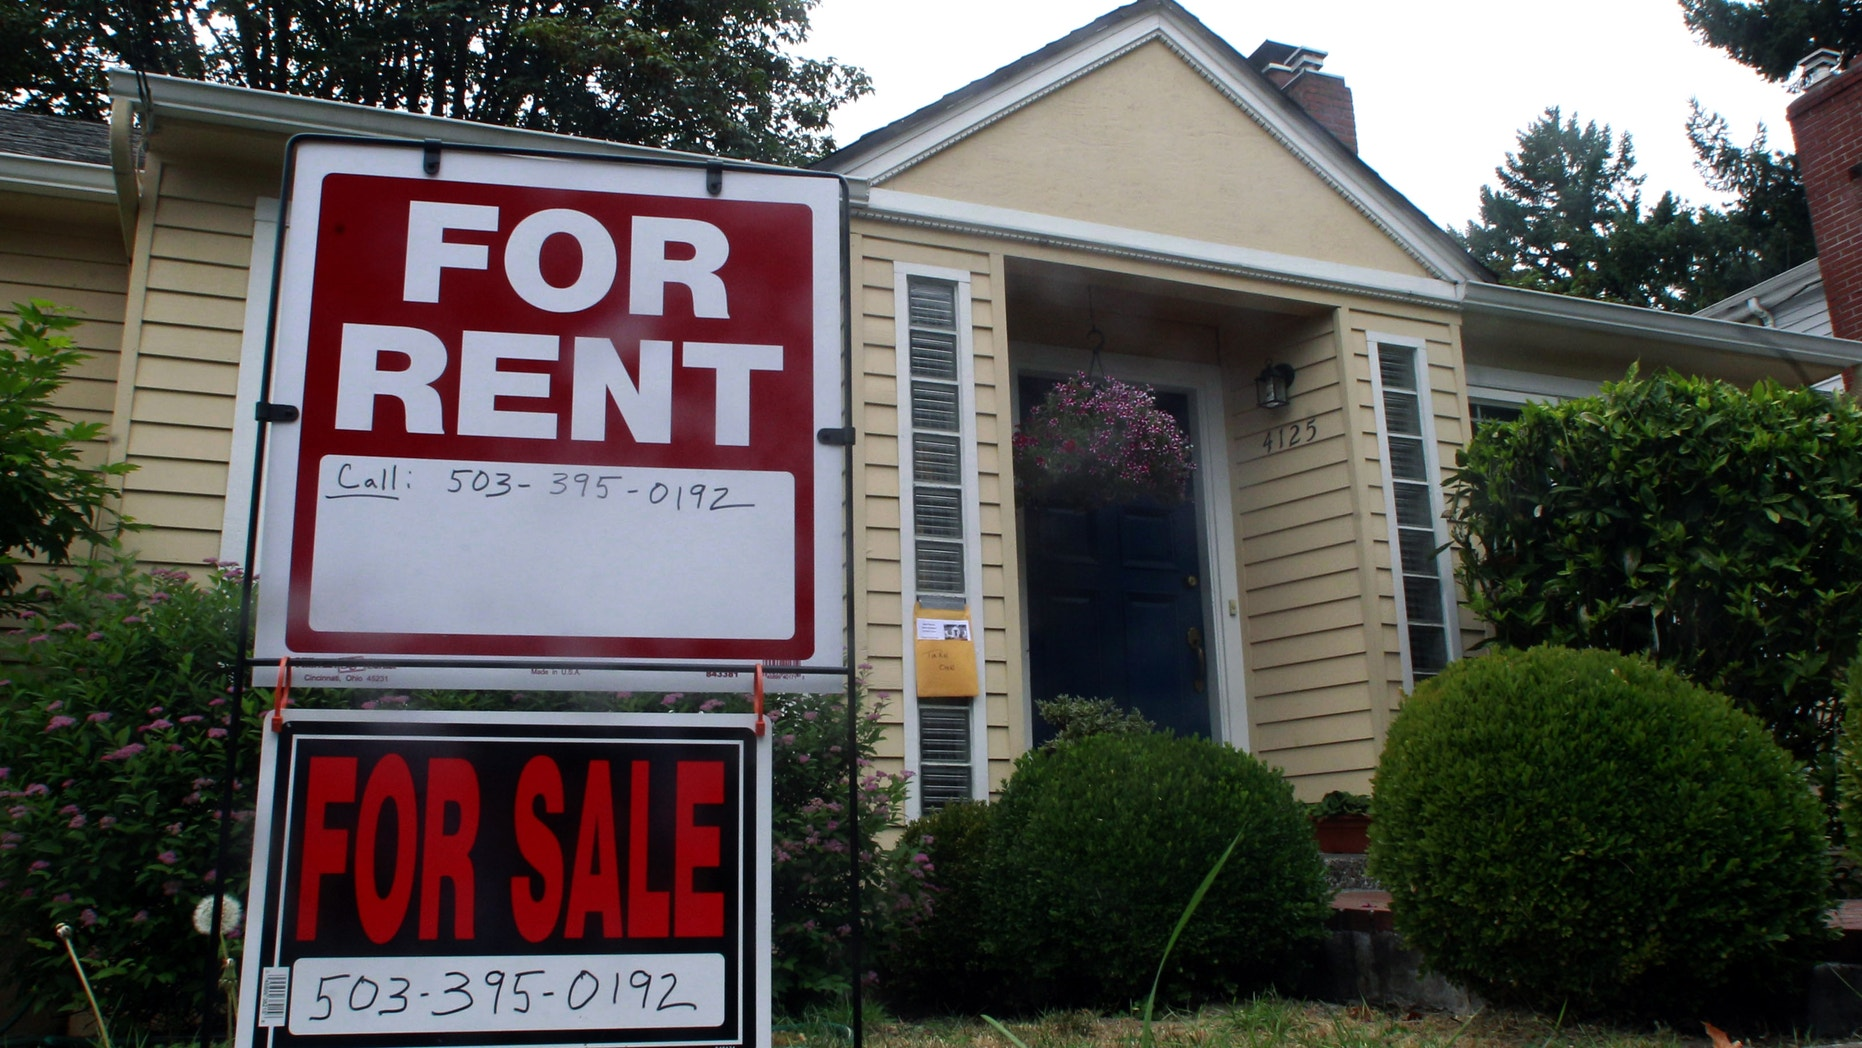 FILE - In this Sept. 13, 2011, file photo, a house is for rent an for sale in Portland, Ore. Experts say owning rental housing can pay off even as market recovers. (AP Photo/Rick Bowmer, File)